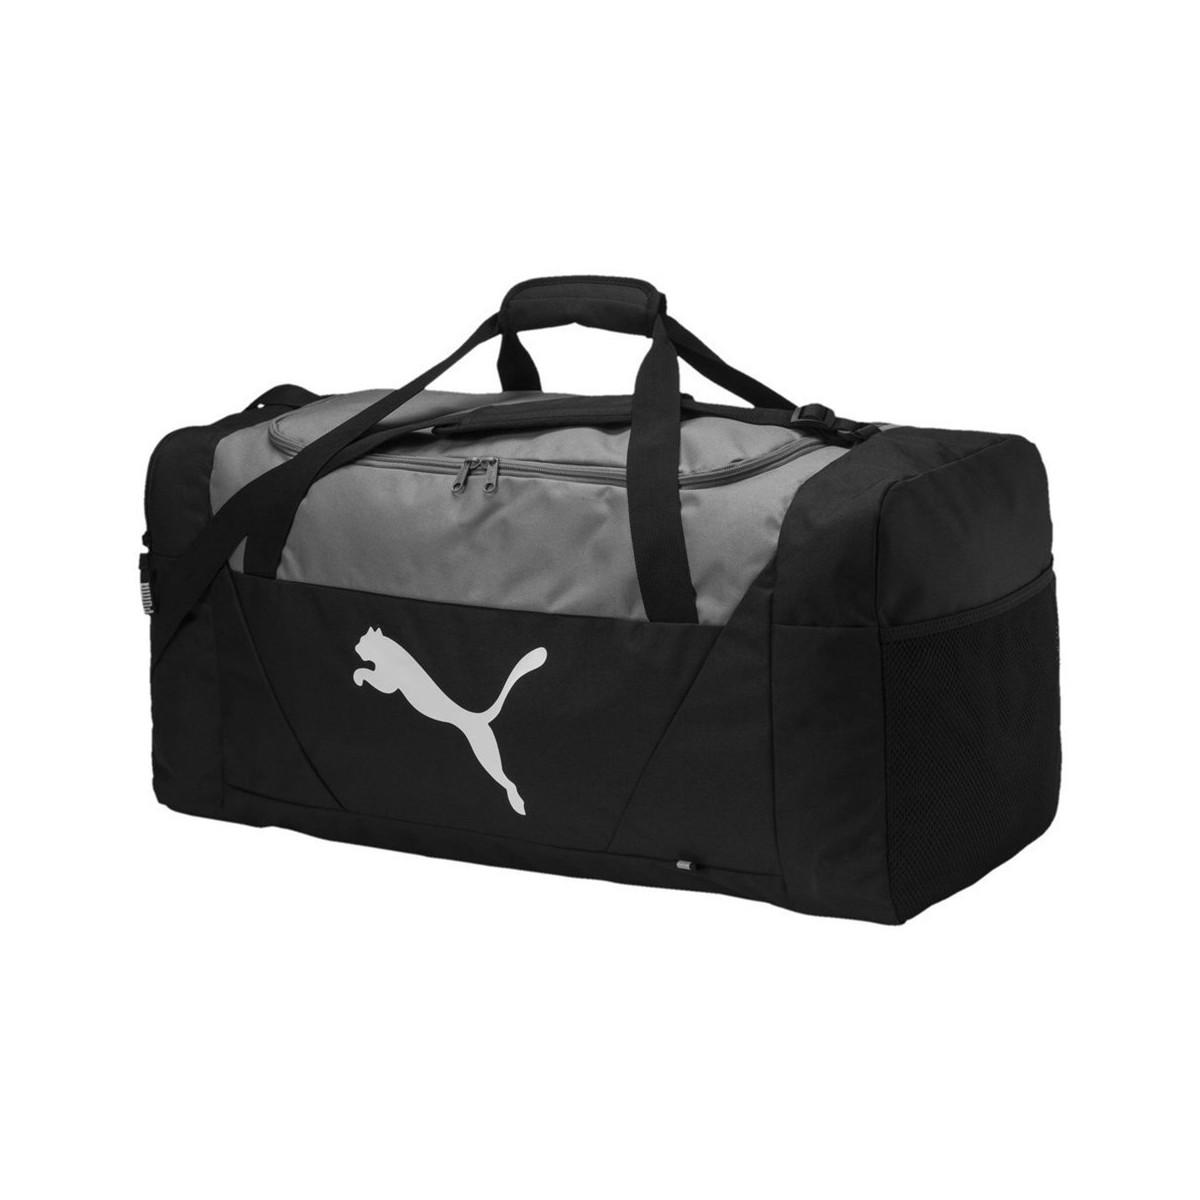 c37652e22f20 Puma Fundamentals Sports Bag L Women s Sports Bag In Black in Black ...